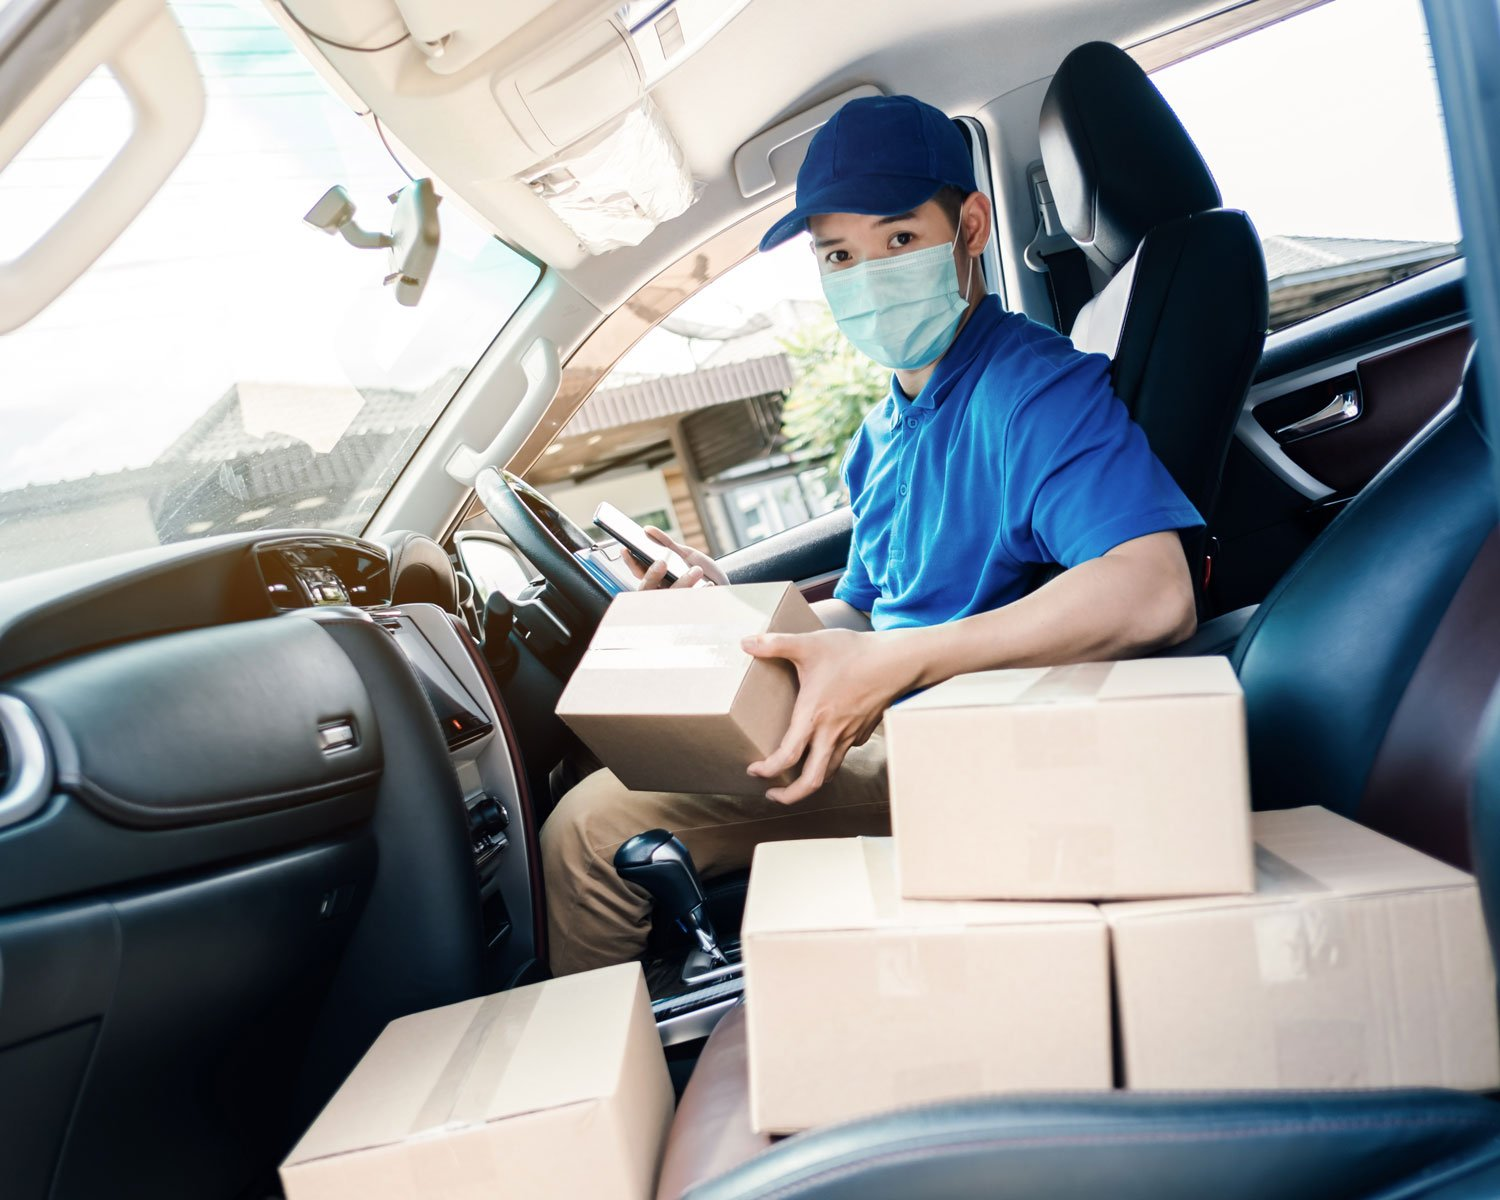 E Commerce Delivery During COVID